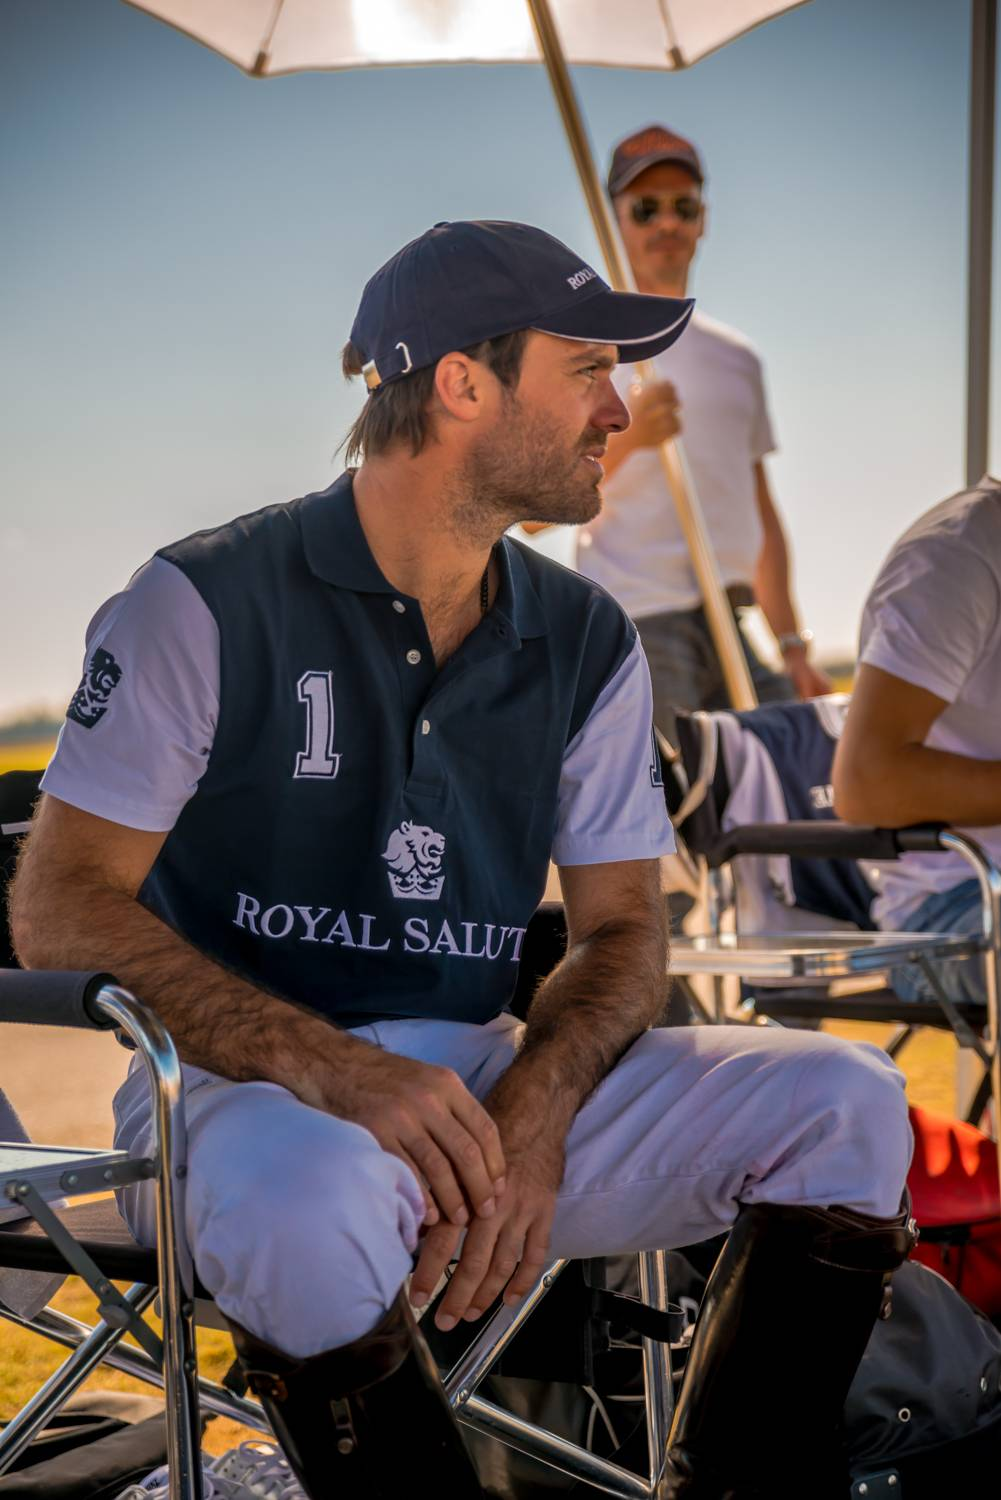 The Best Polo Photography Anywhere